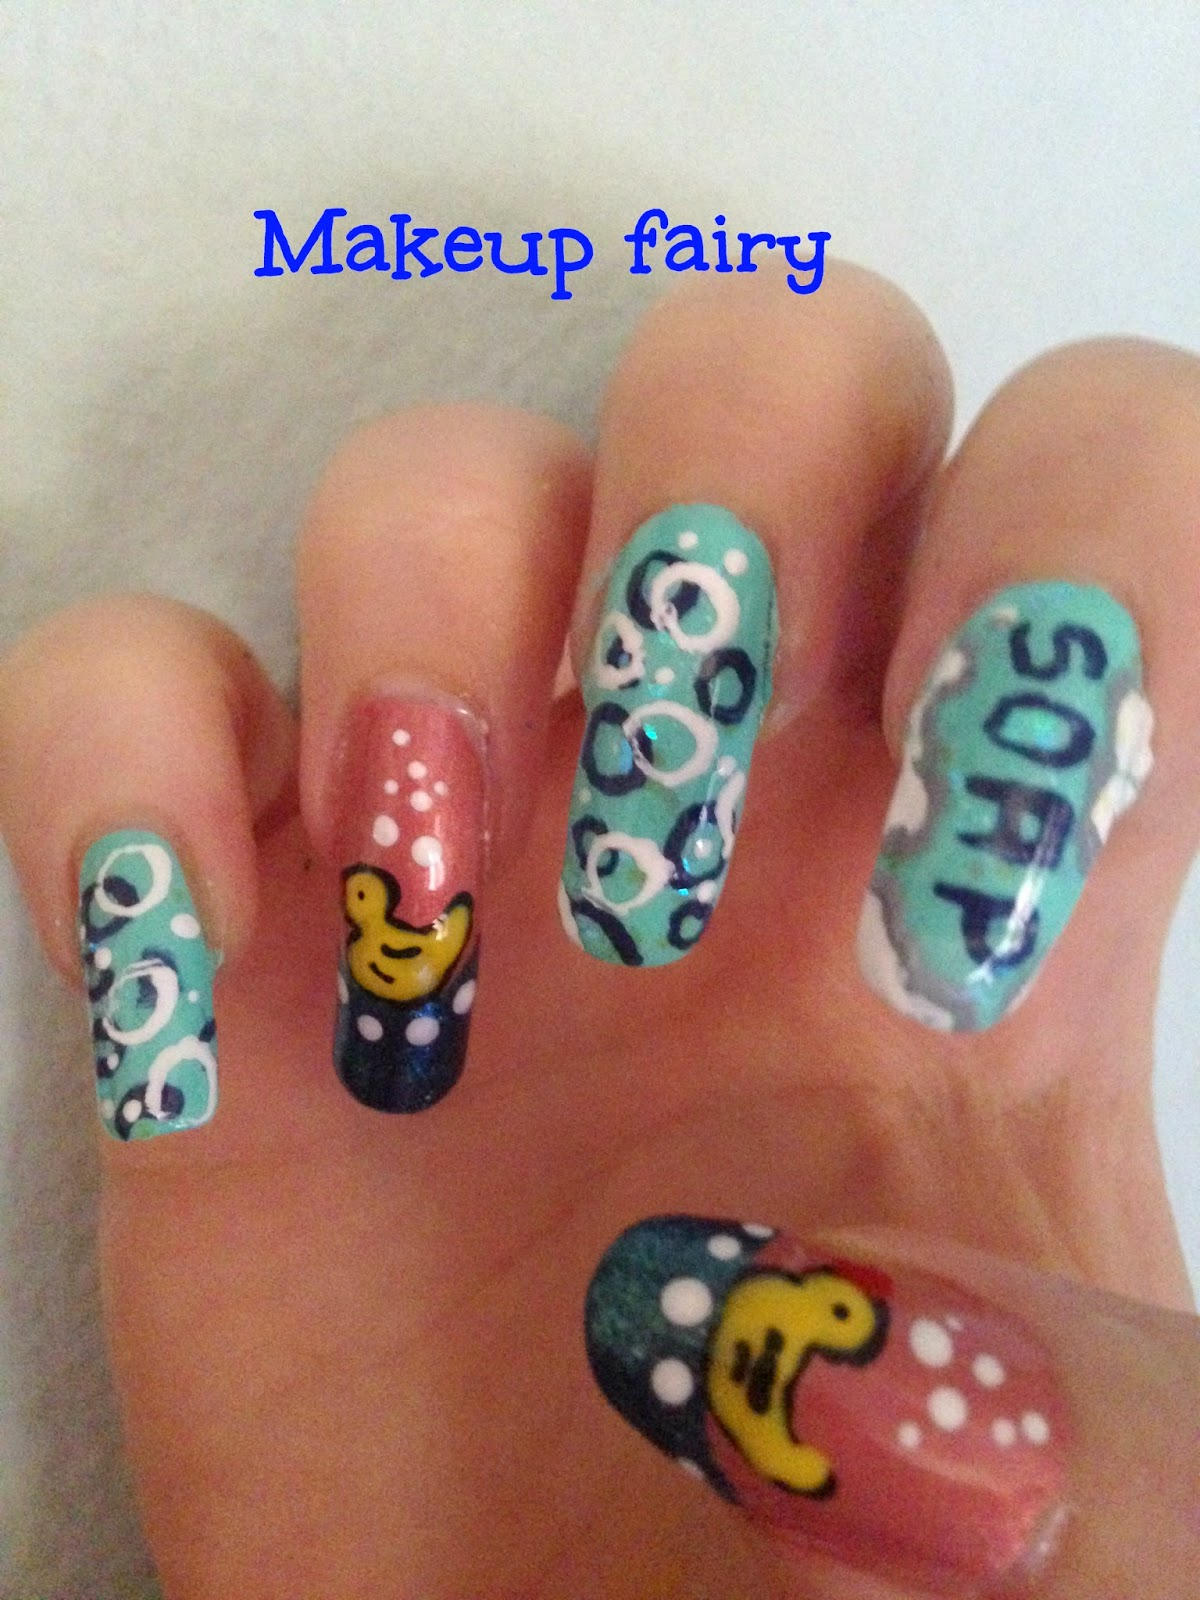 Tinklesmakeup Bubbly Bath With Rubber Duck Nail Art